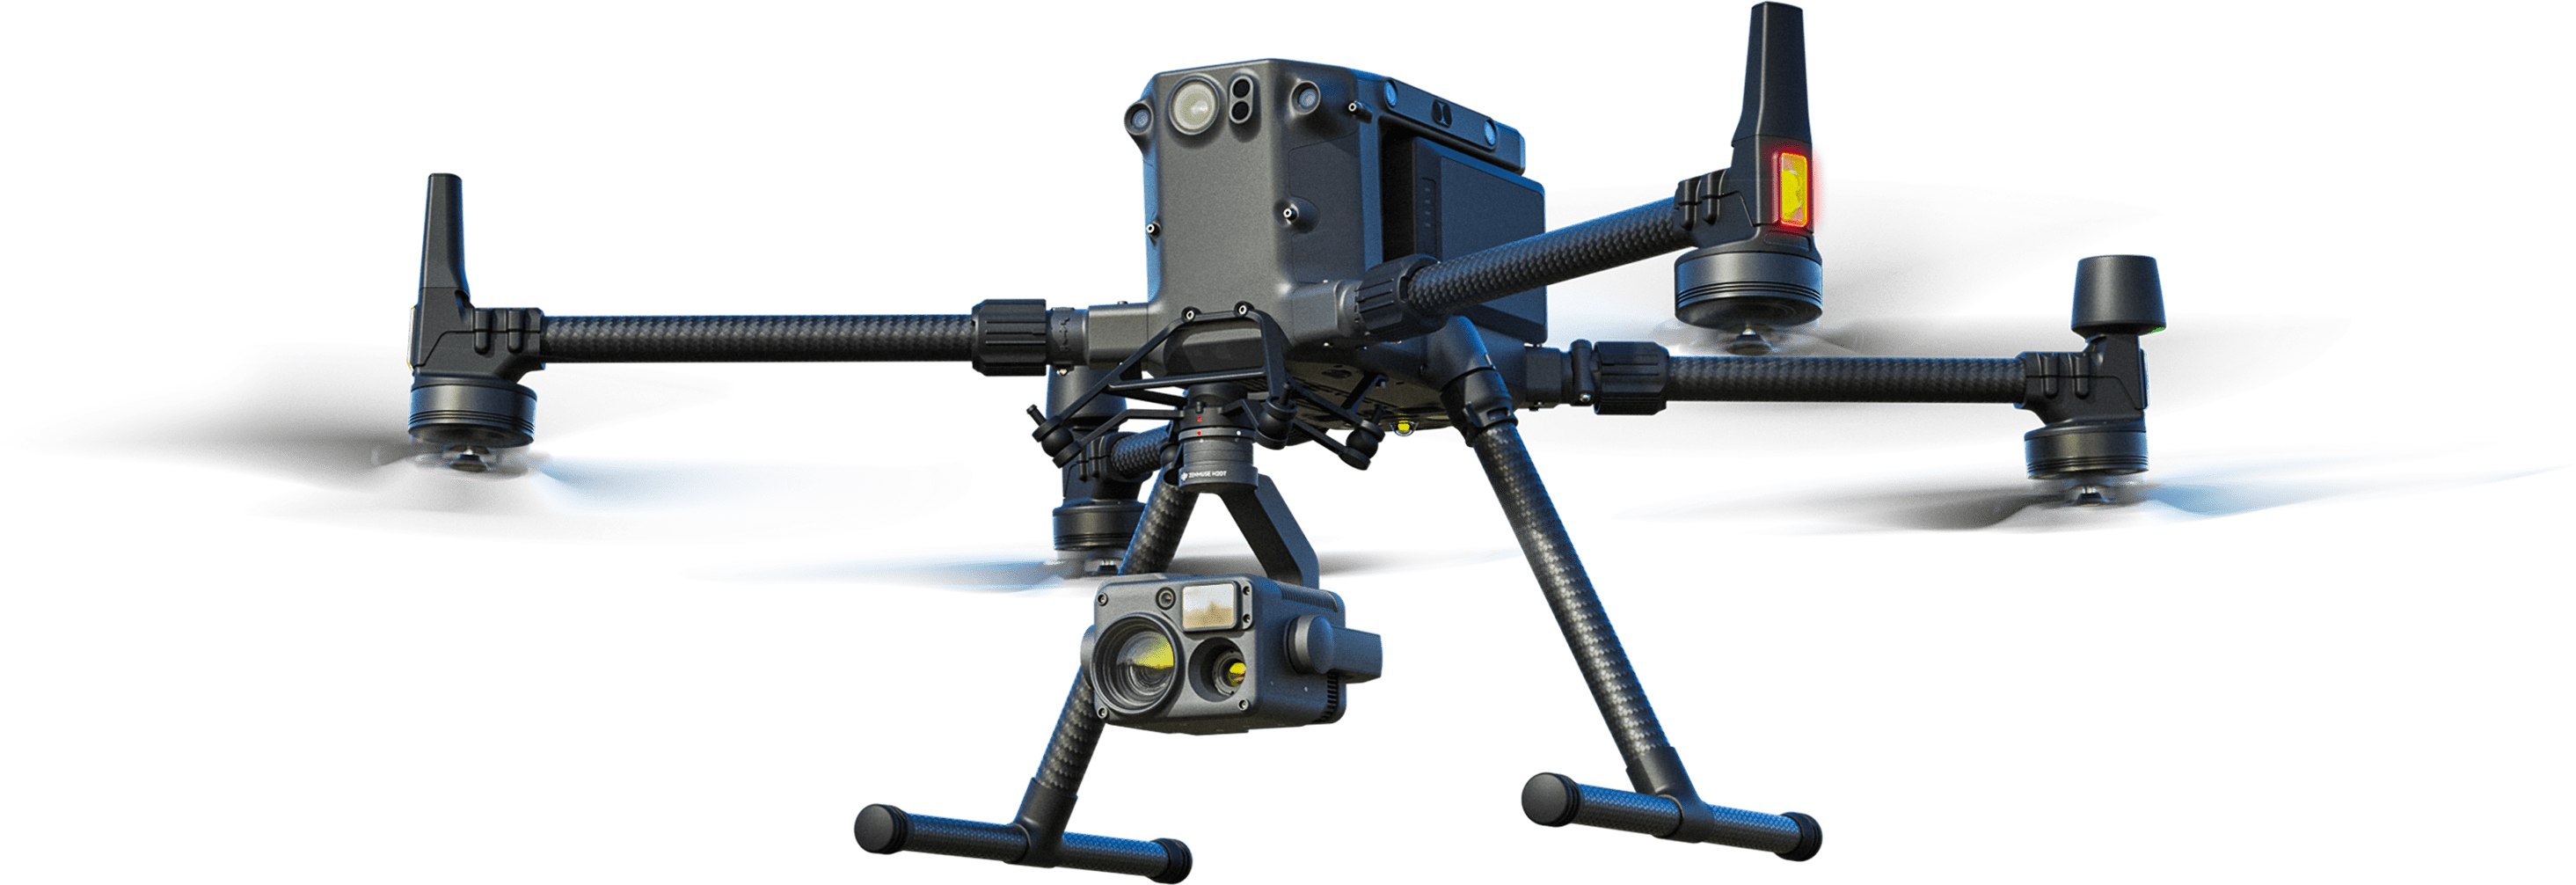 DJI Matrice 300 Commercial Quadcopter with RTK